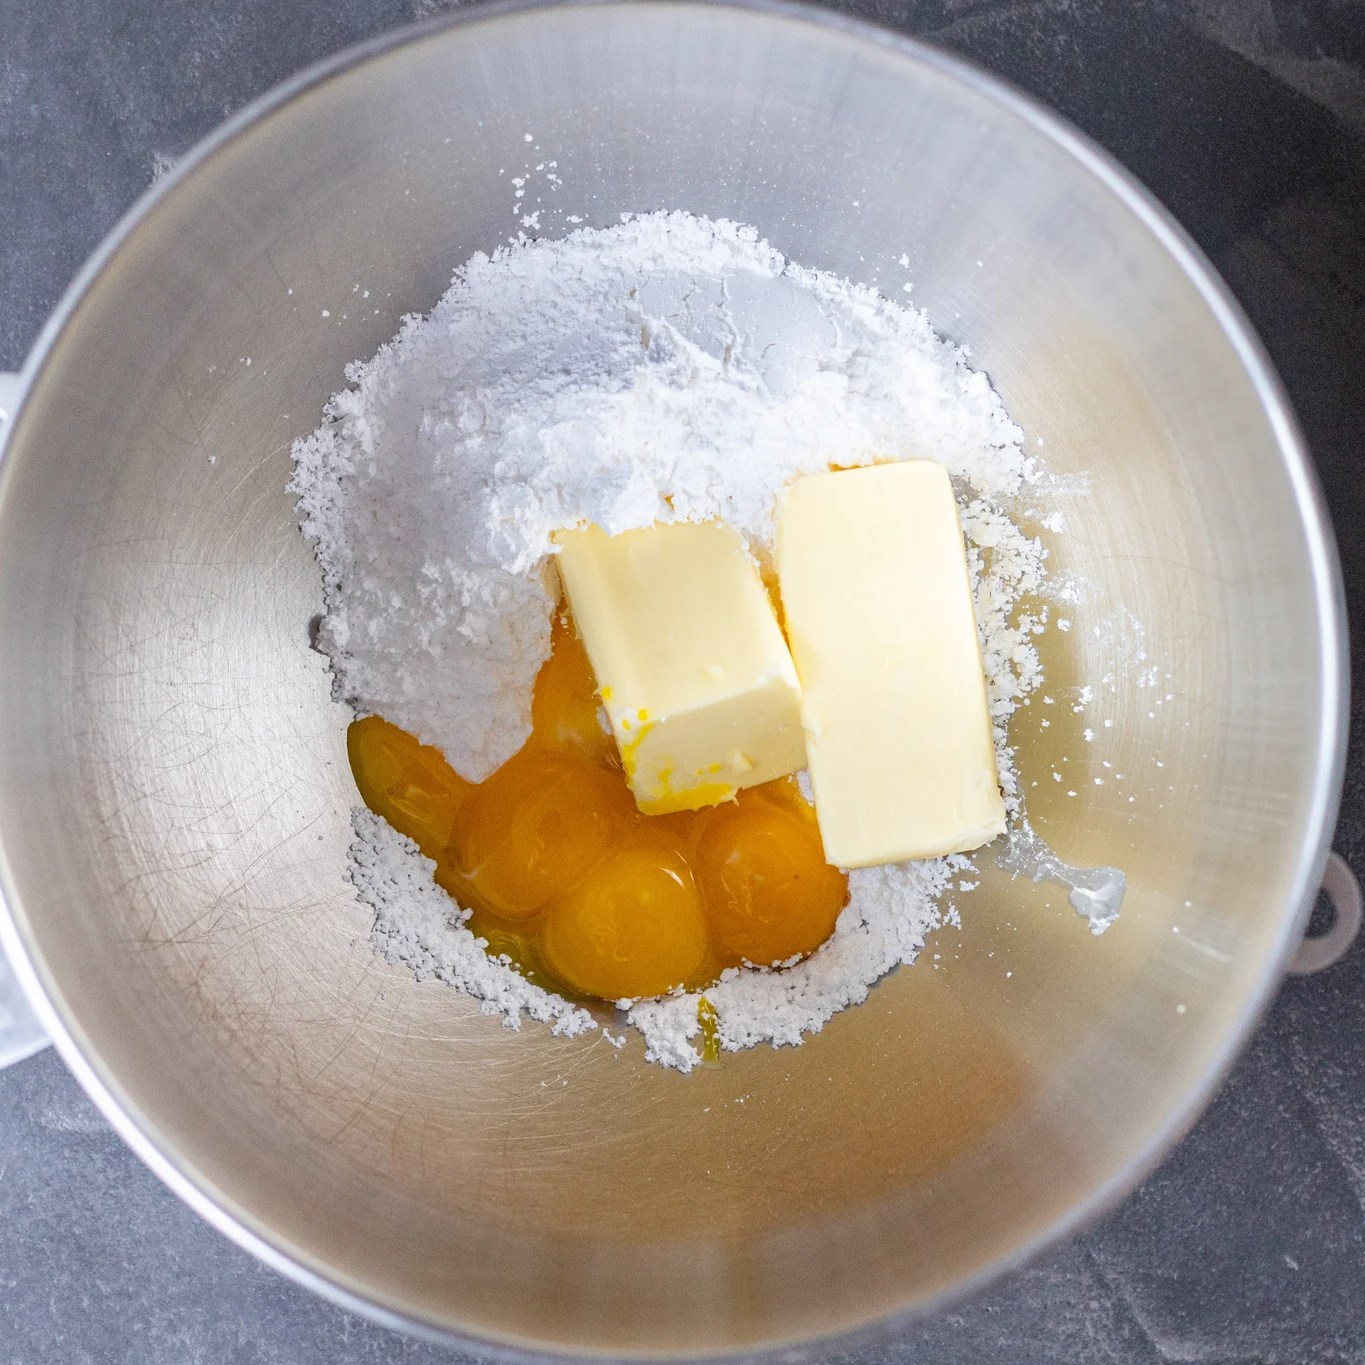 butter, sugar and egg yolks in a bowl